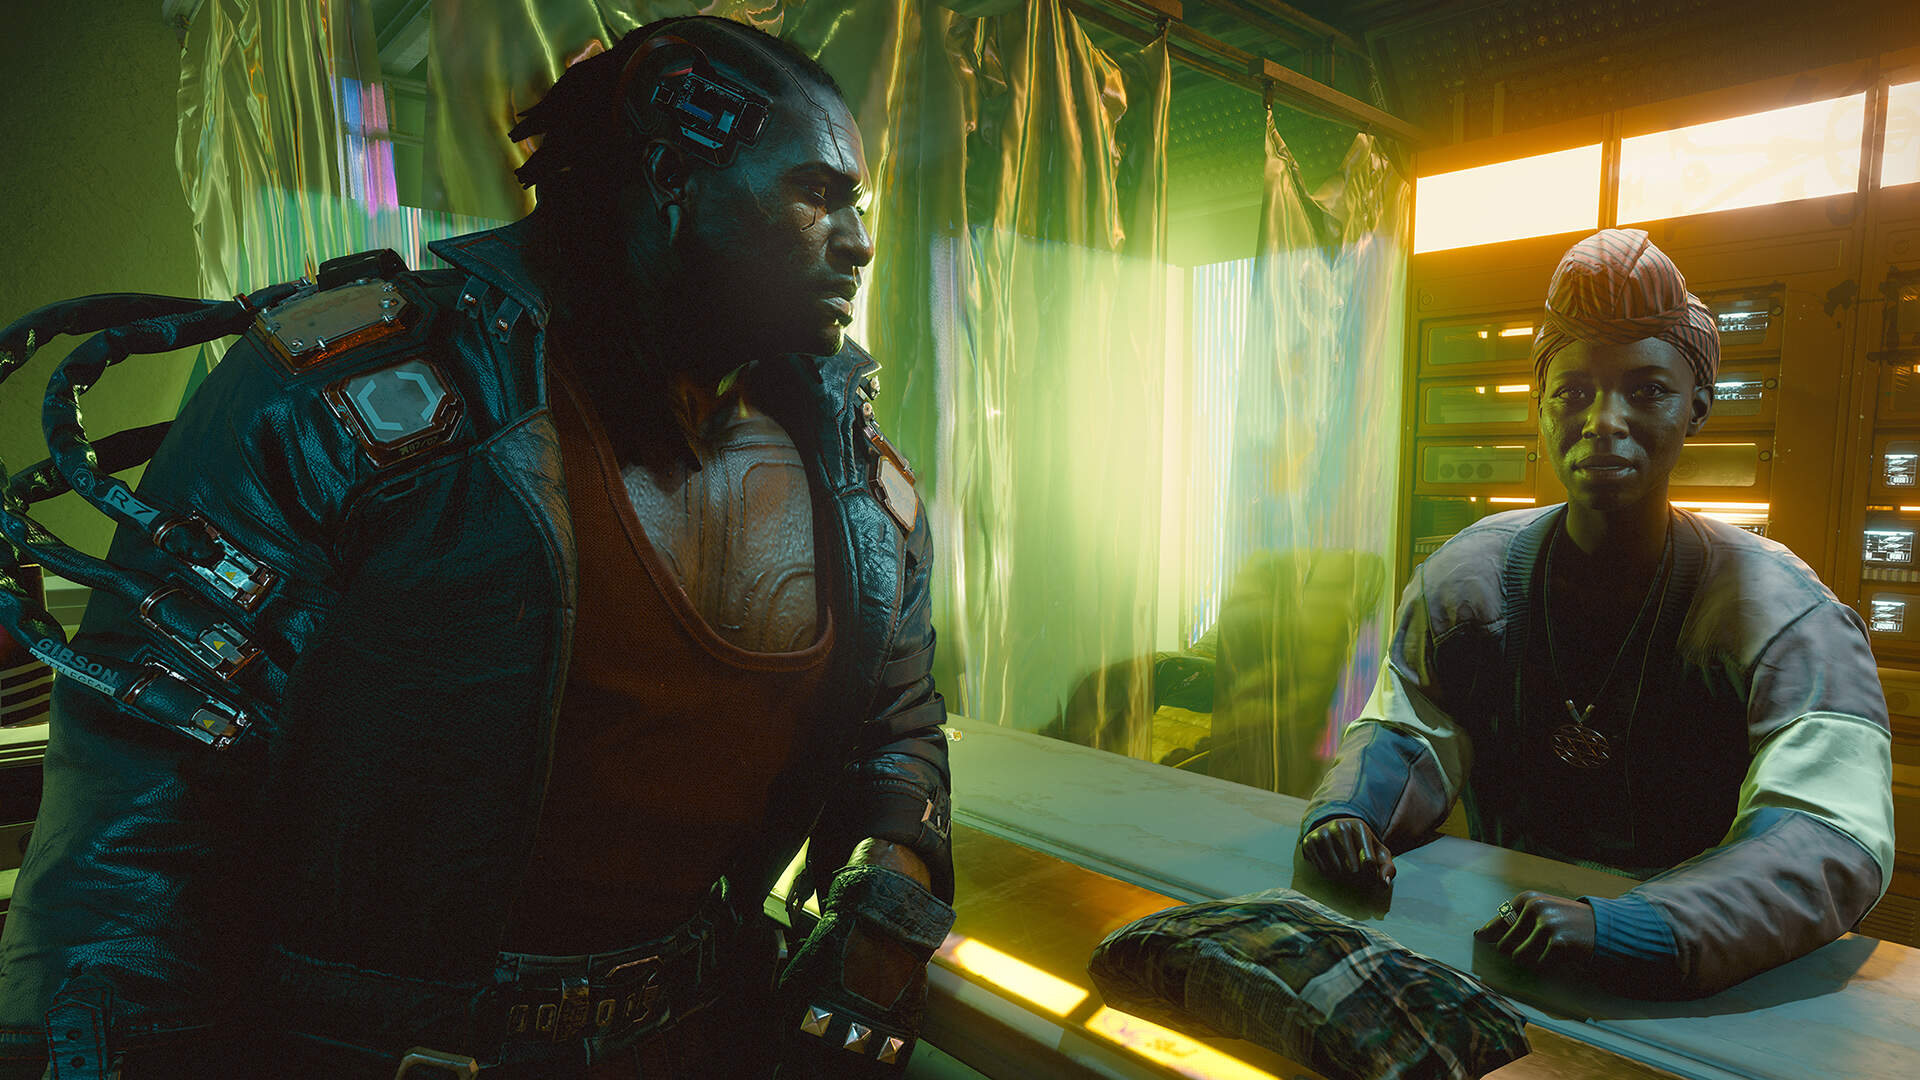 Cyberpunk 2077 Release Date Getting Delayed Once Again, This Time to November